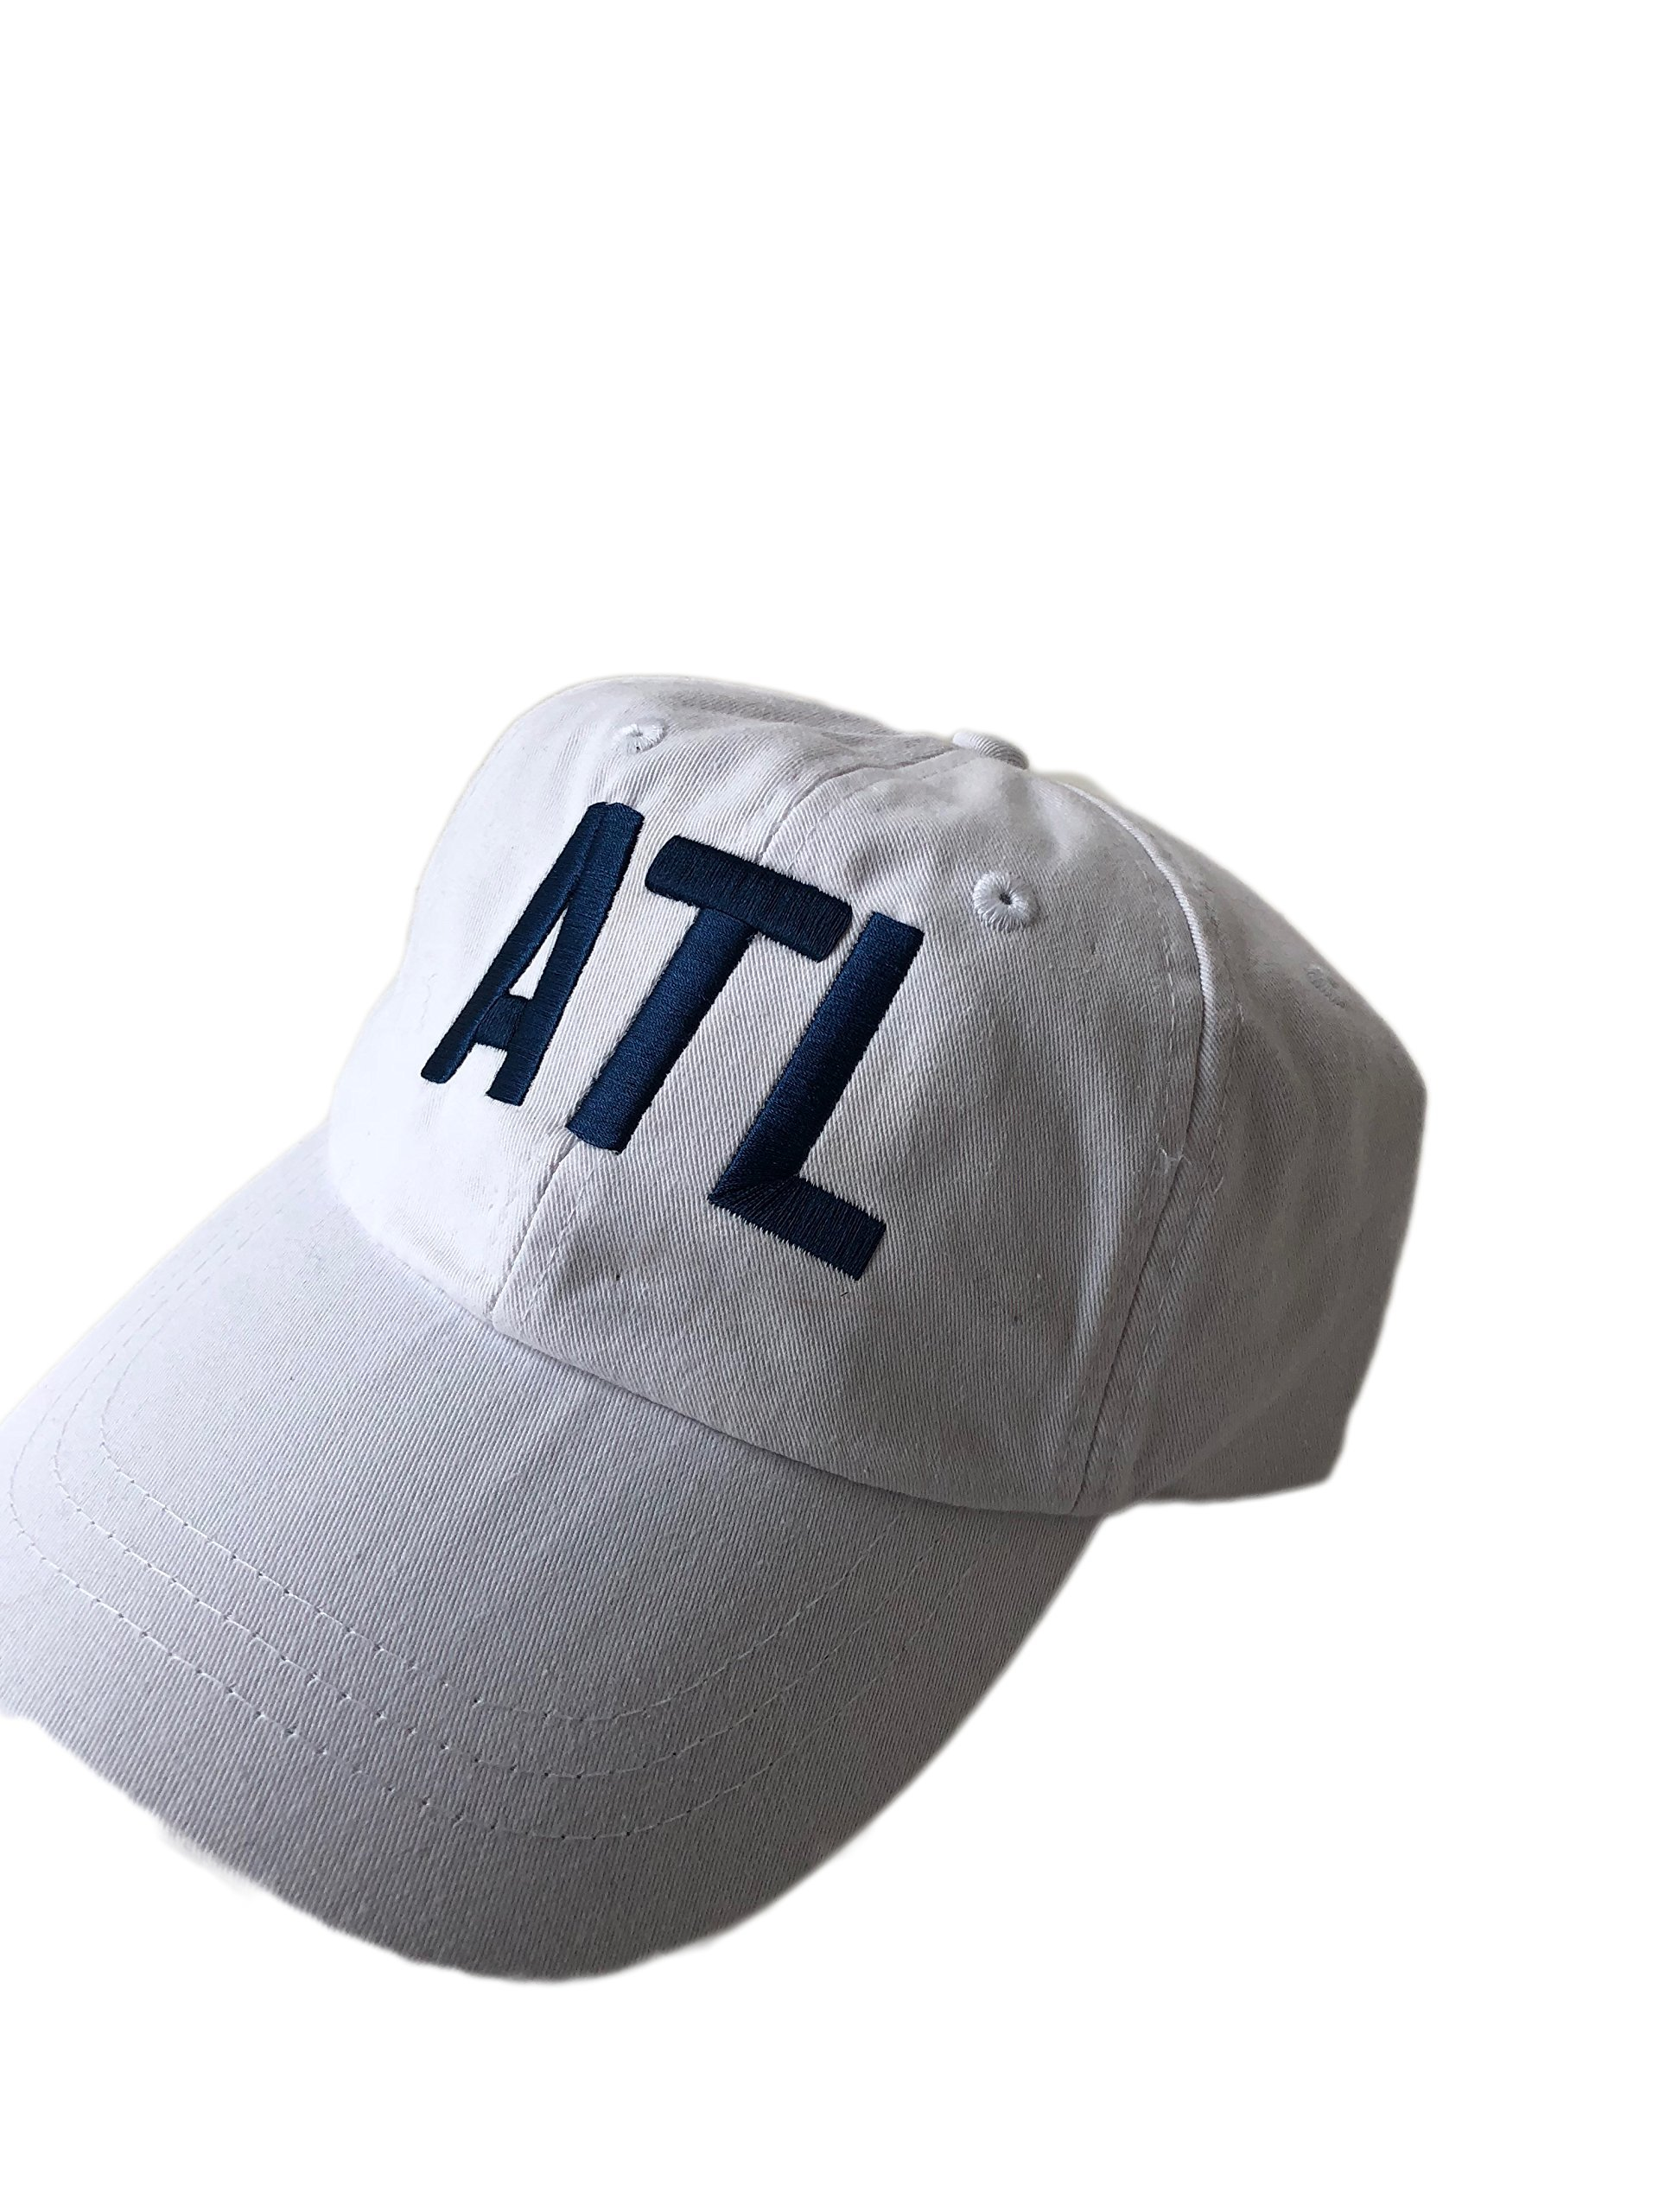 Mary's Monograms Embroidered ATL Airport Code White Baseball Hat With Blue Lettering